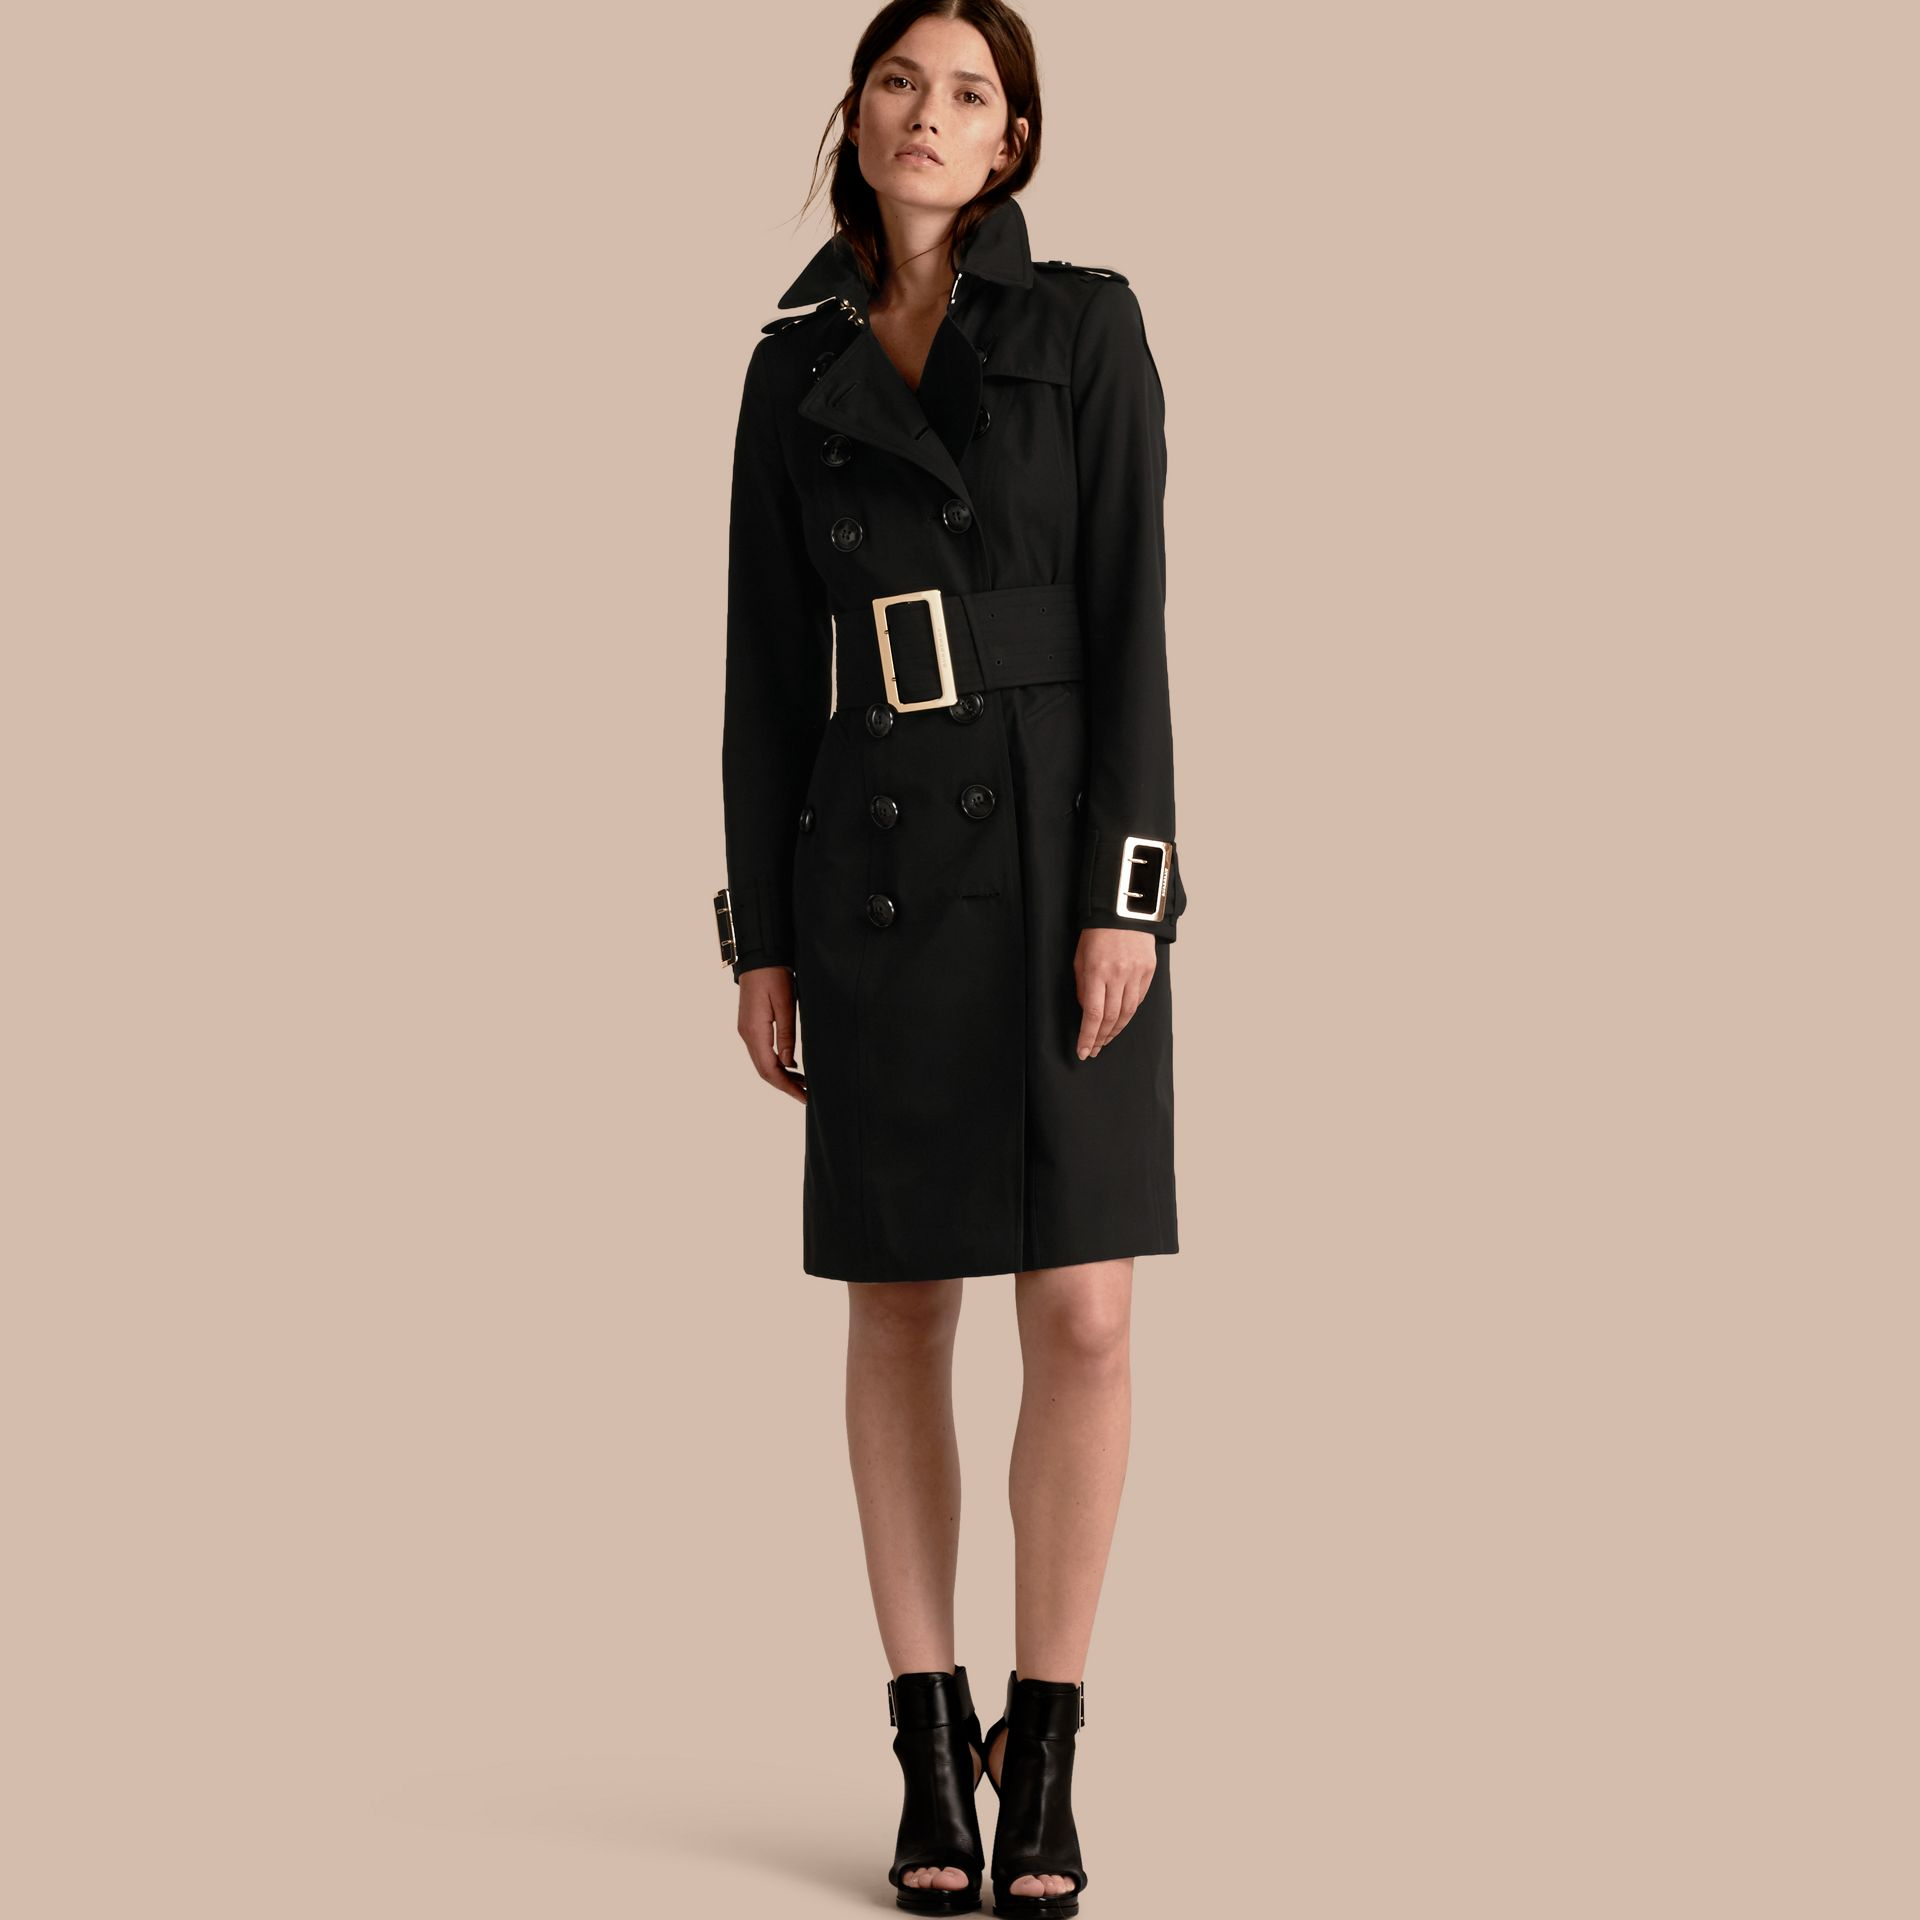 Cotton Gabardine Trench Coat with Oversize Buckles - gallery image 1